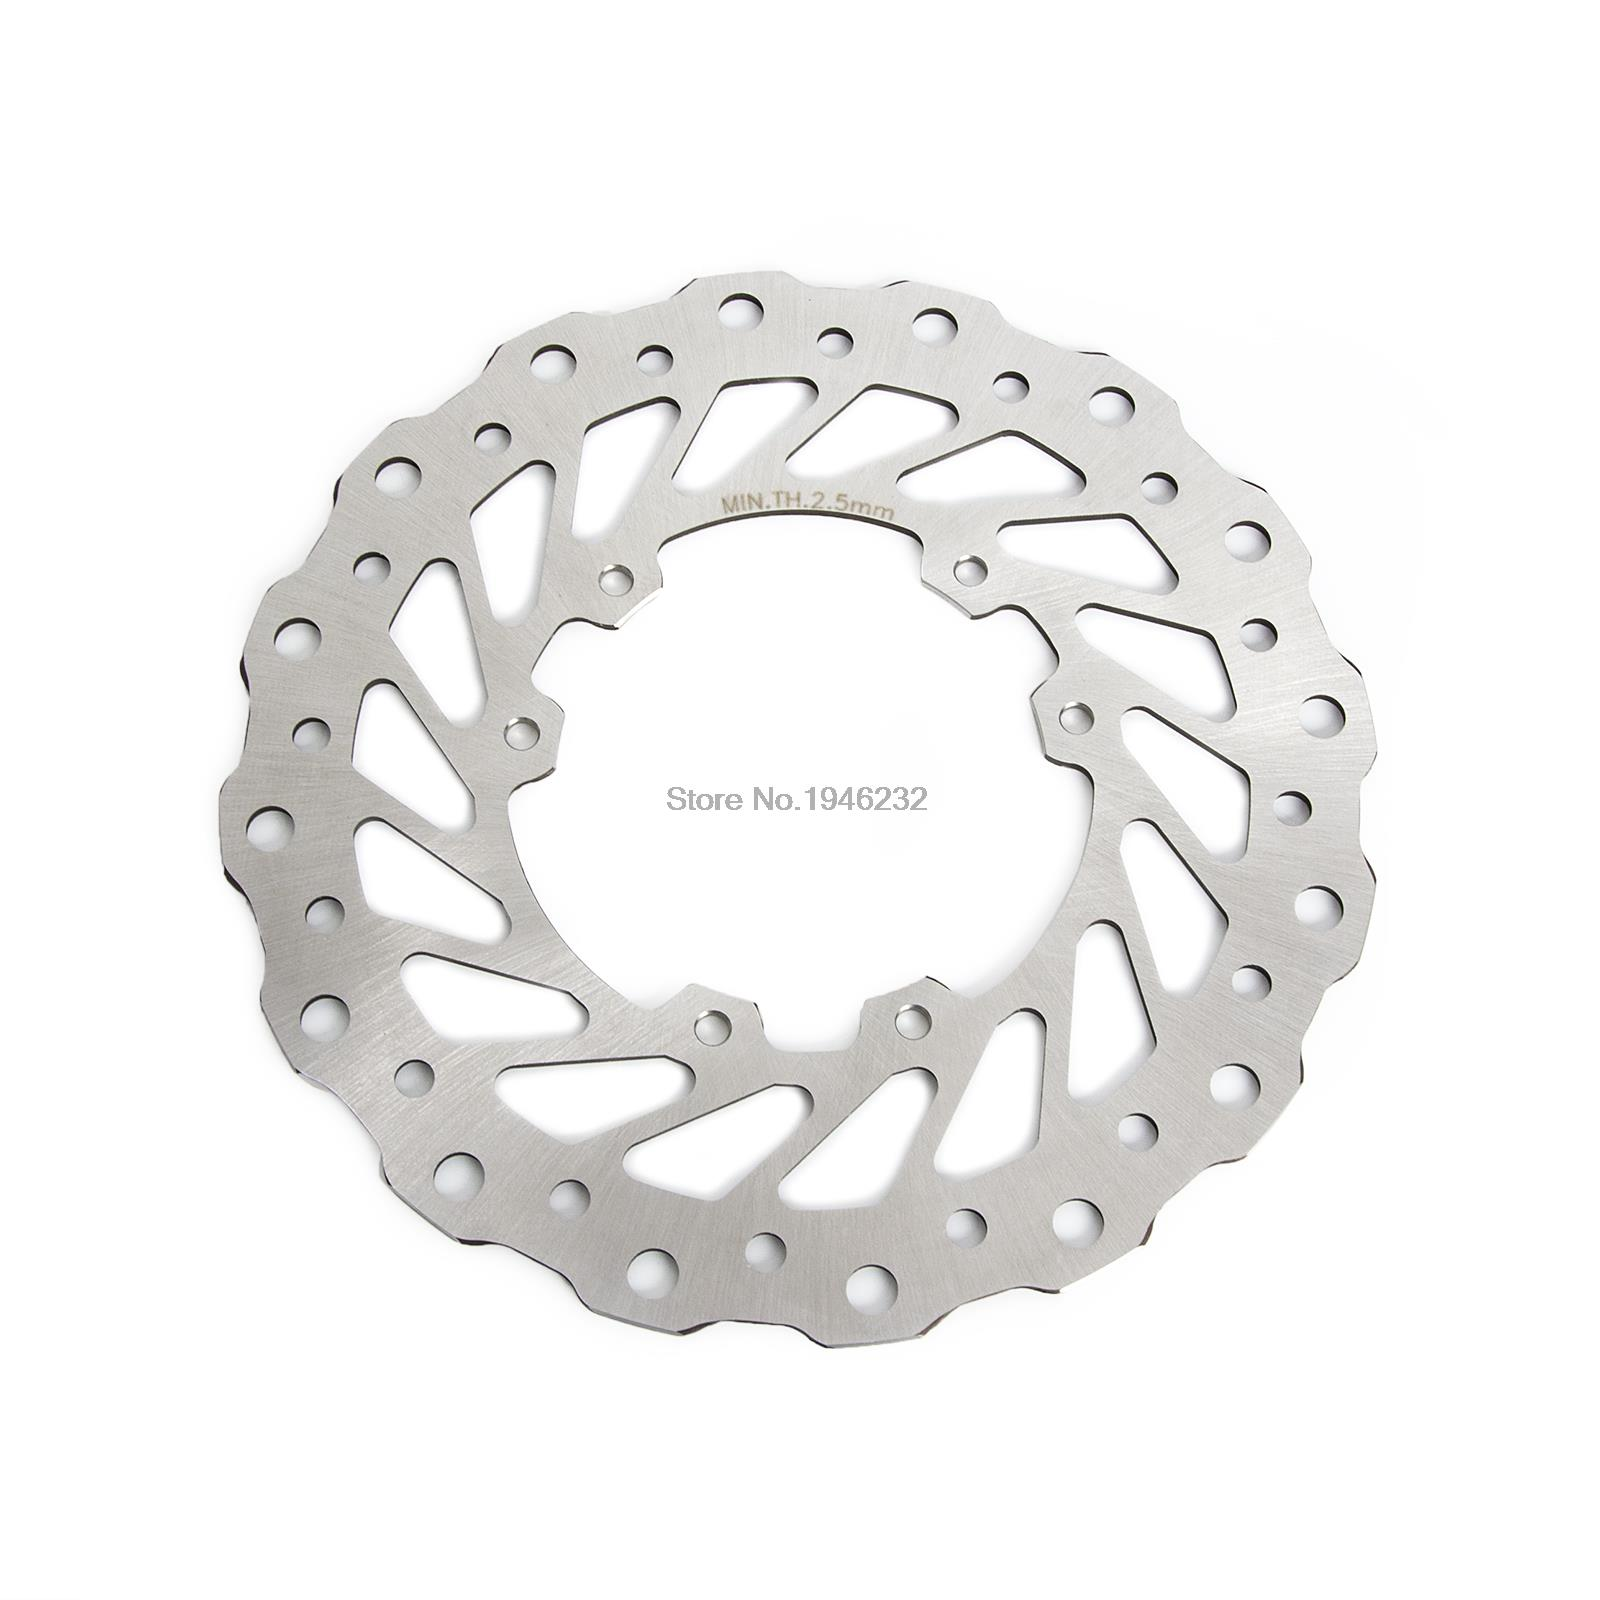 Metallic Front Brake Disc Rotor  For Honda 125cc CR 125 CR250 1995-2007 CRF250 CRF450 2004-2014 CR 500 1995-2001 keoghs motorcycle brake disc brake rotor floating 260mm 82mm diameter cnc for yamaha scooter bws cygnus front disc replace